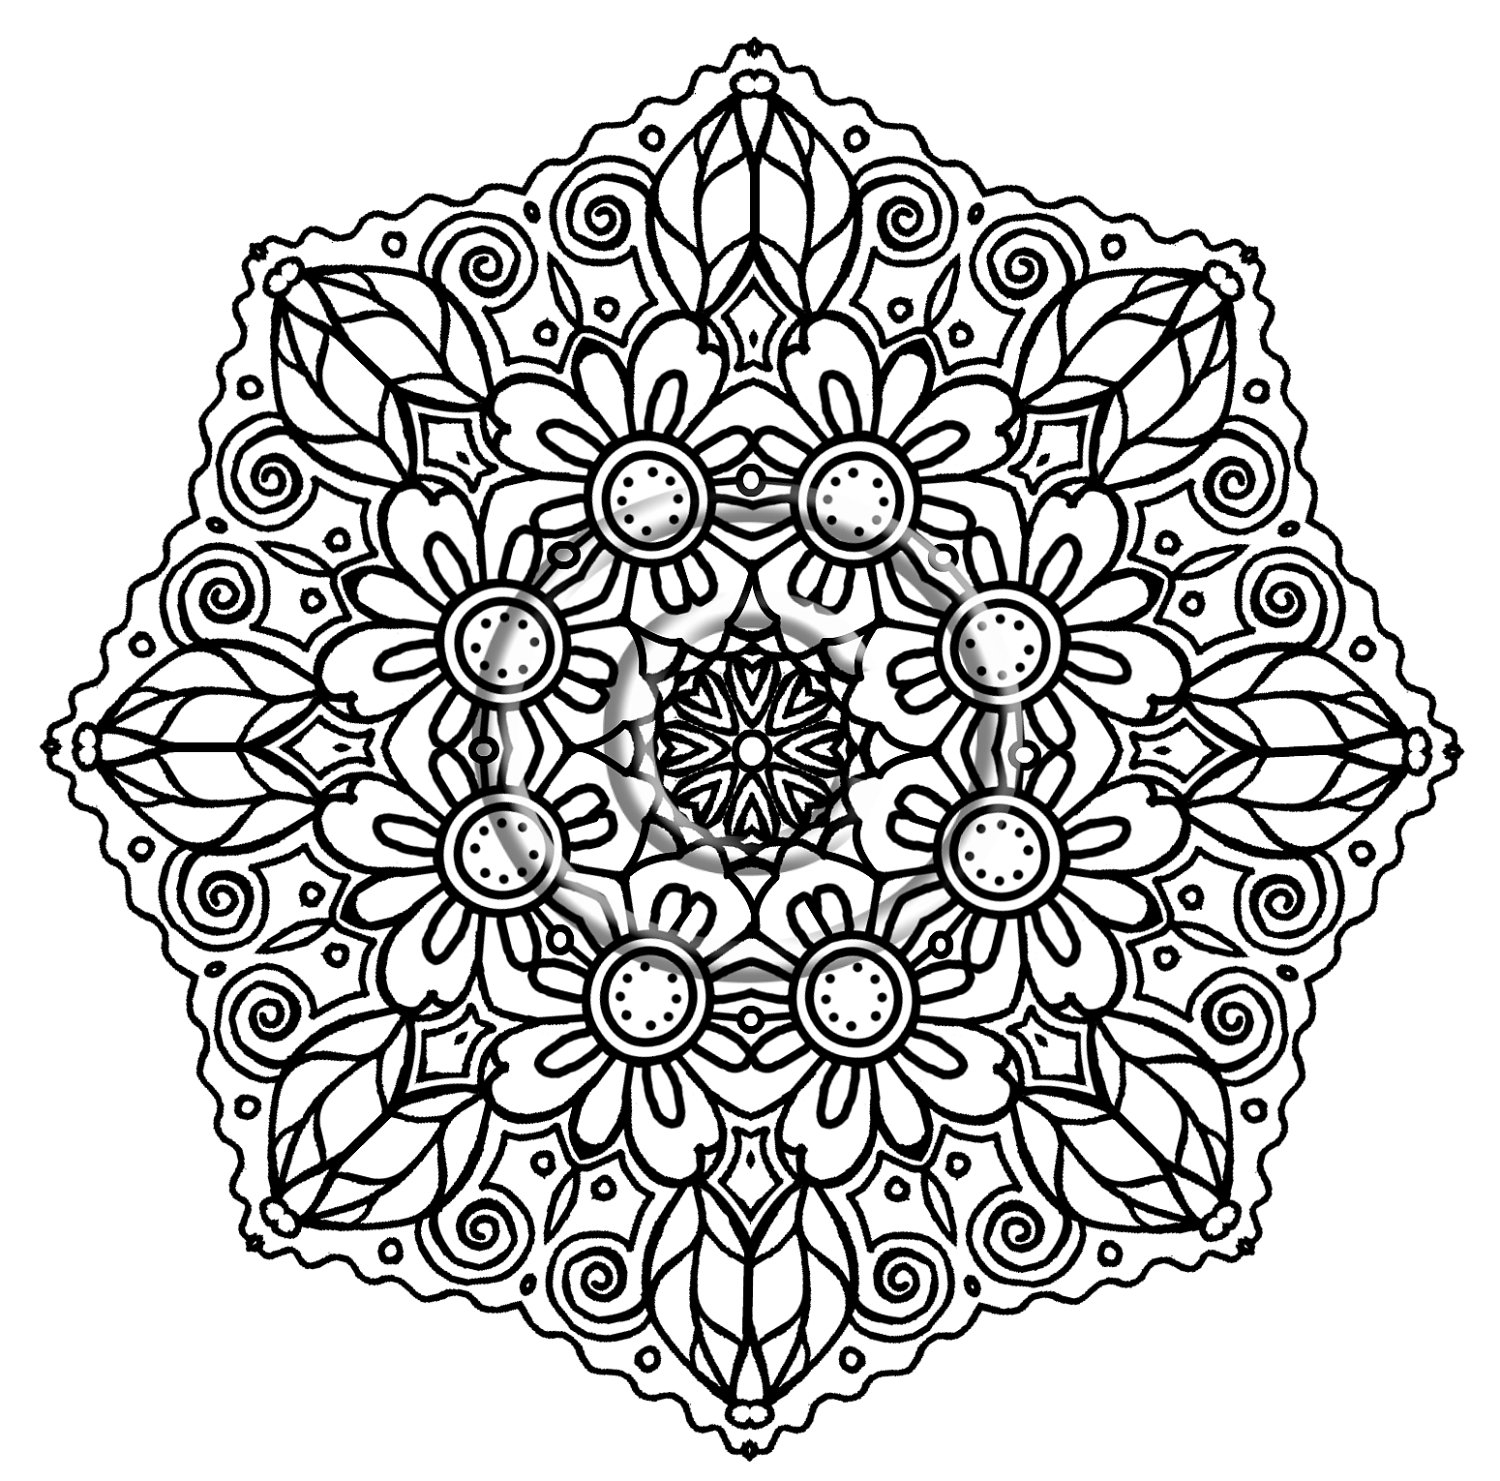 Intricate Mandala Coloring Pages Download Of Stress Relief Coloring Pages Animals Funny Coloring Pages Printable